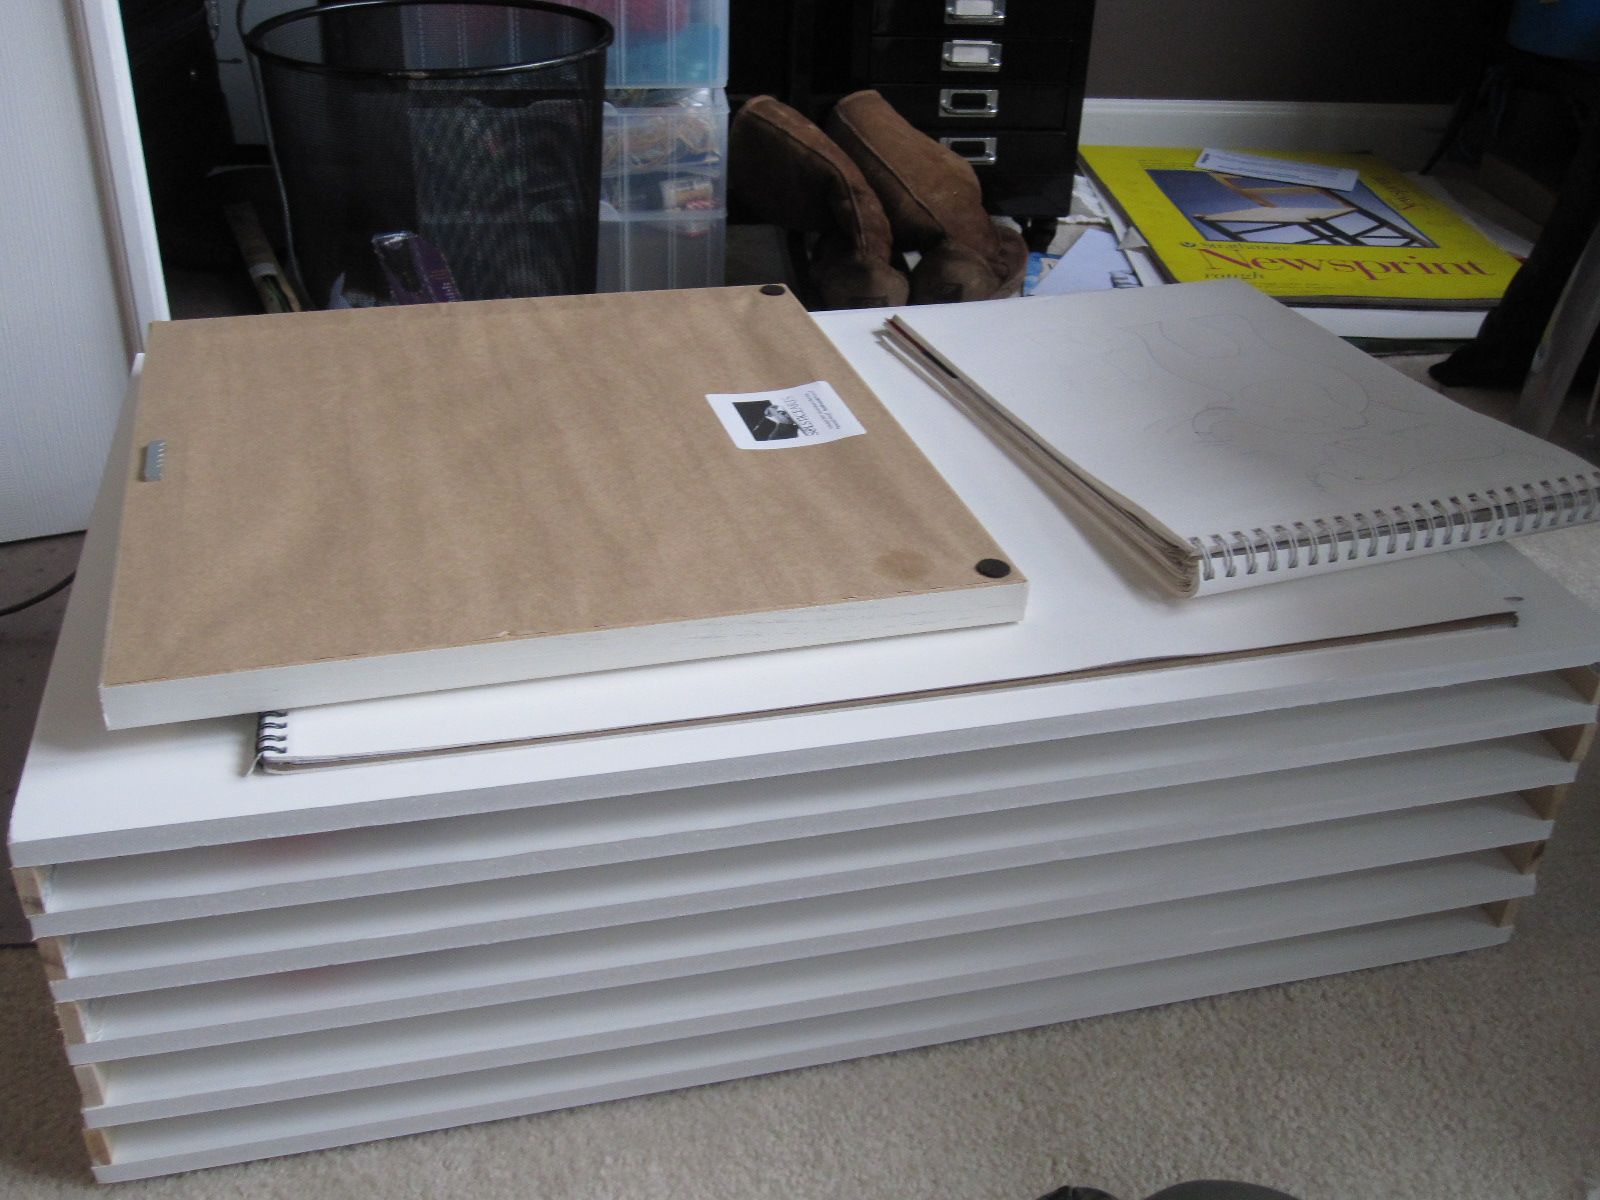 Flat Files Diy For 40 Superforest Flat Files Flat File